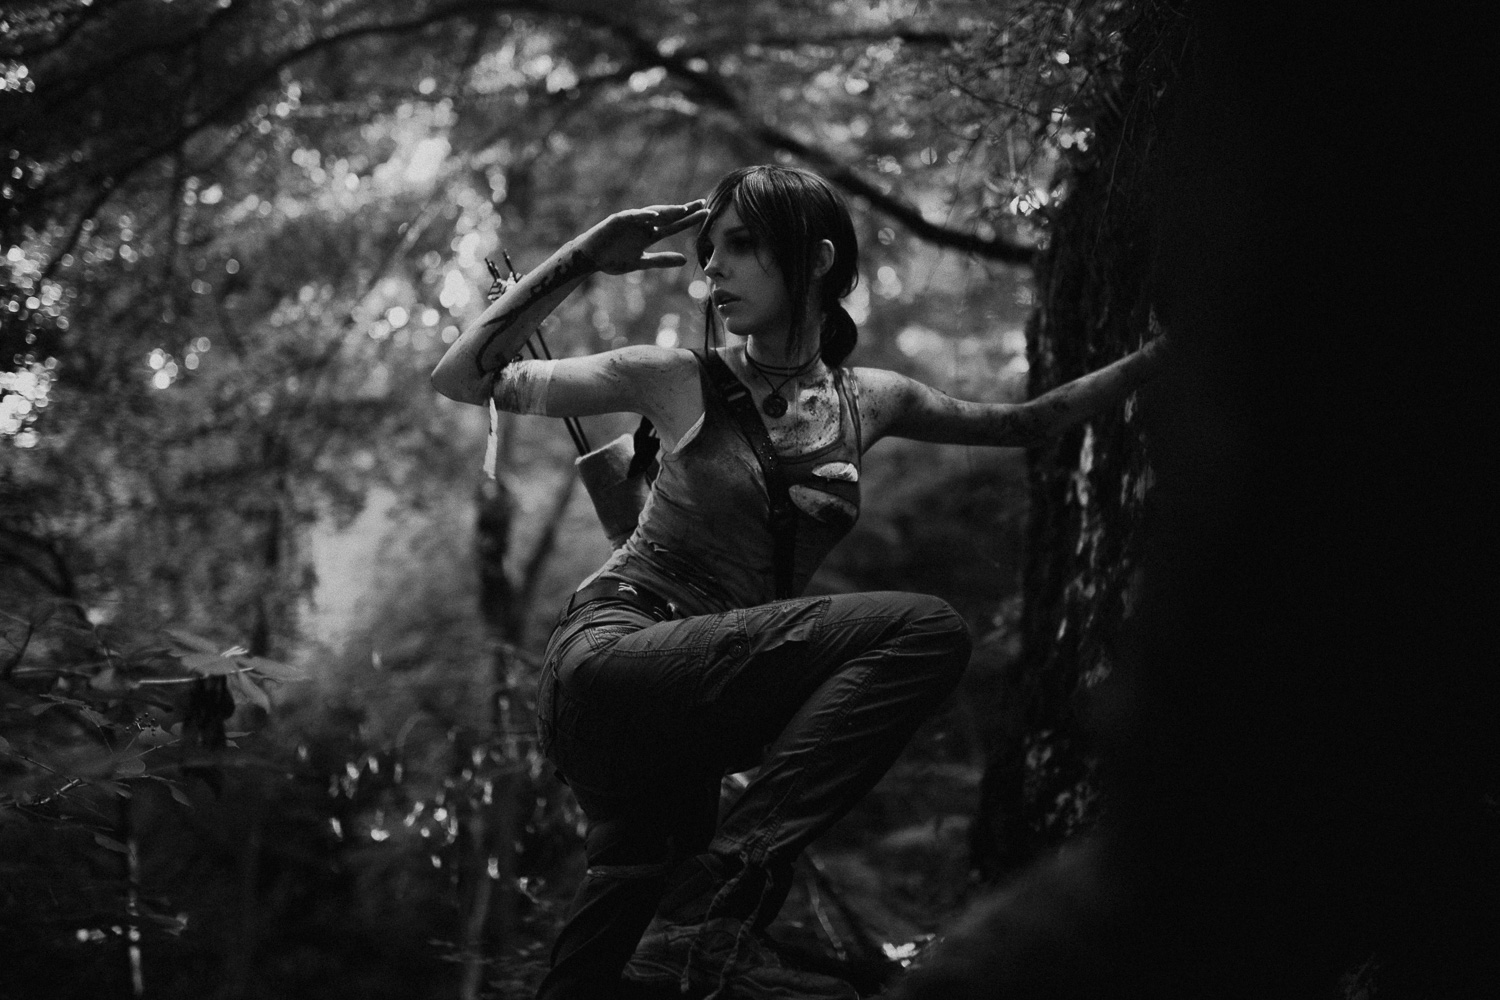 Tomb-Raider-Lara-Croft-Cosplay-6.jpg